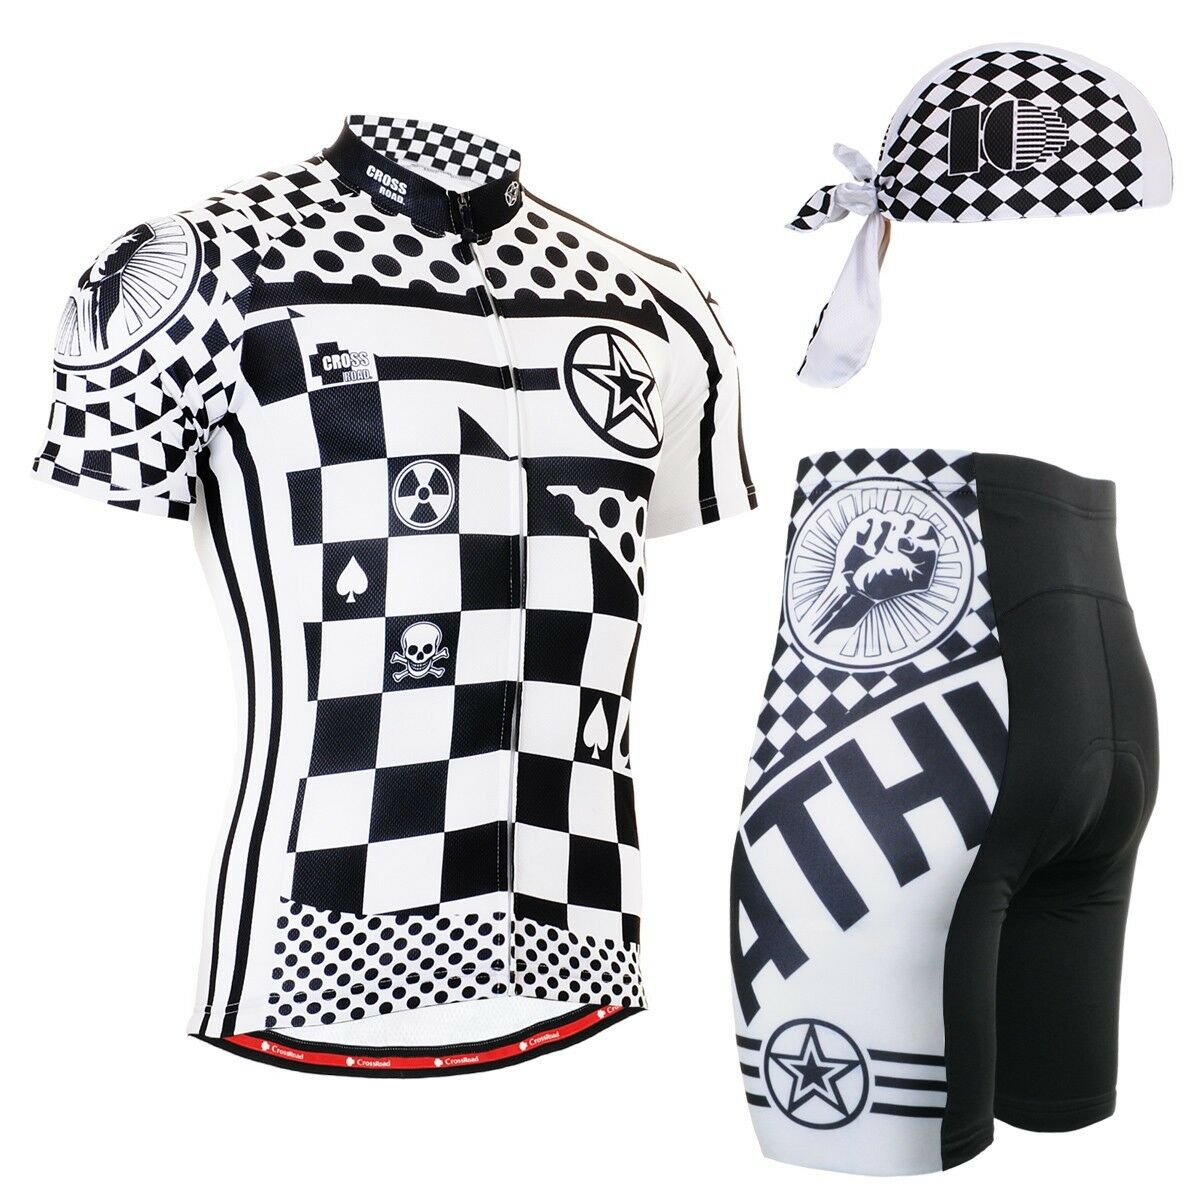 FIXGEAR CS-602-SET Cycling Jersey & Shorts Padded, Bicycle Bicycle Padded, Wear, MTB Road Bike 4f162e